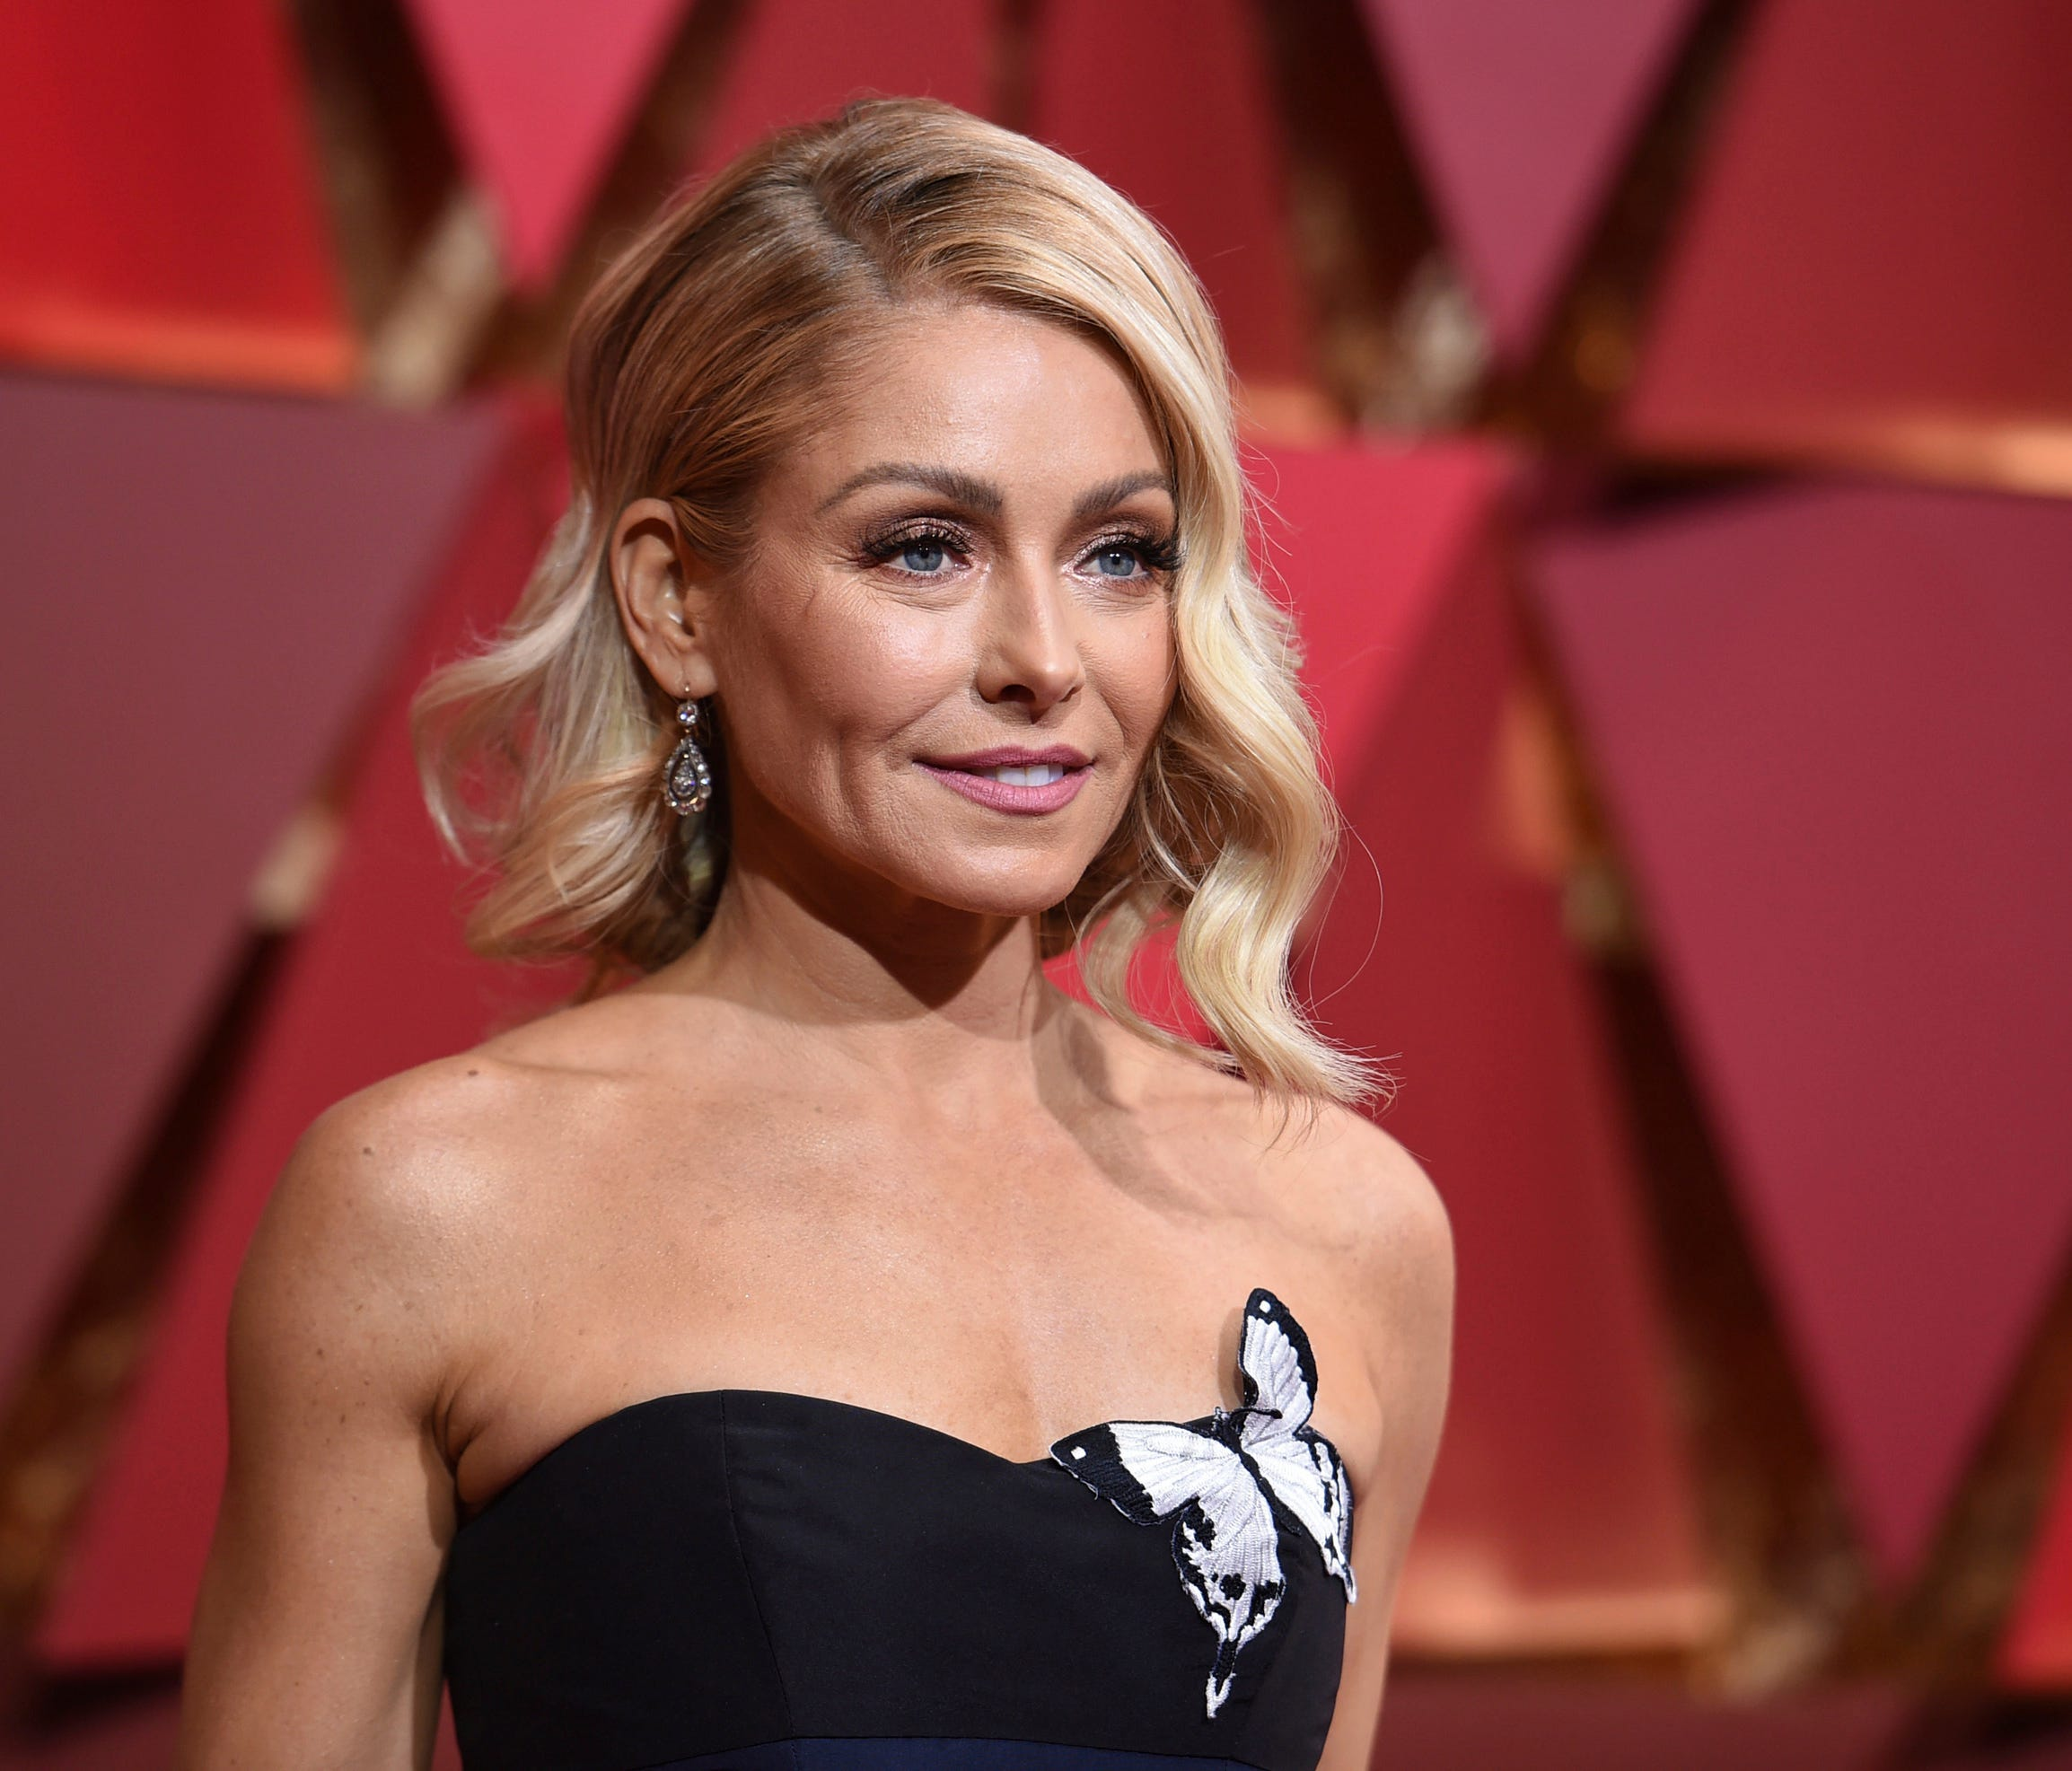 Kelly Ripa arrives at the Oscars at the Dolby Theatre in Los Angeles Feb. 26, 2017.